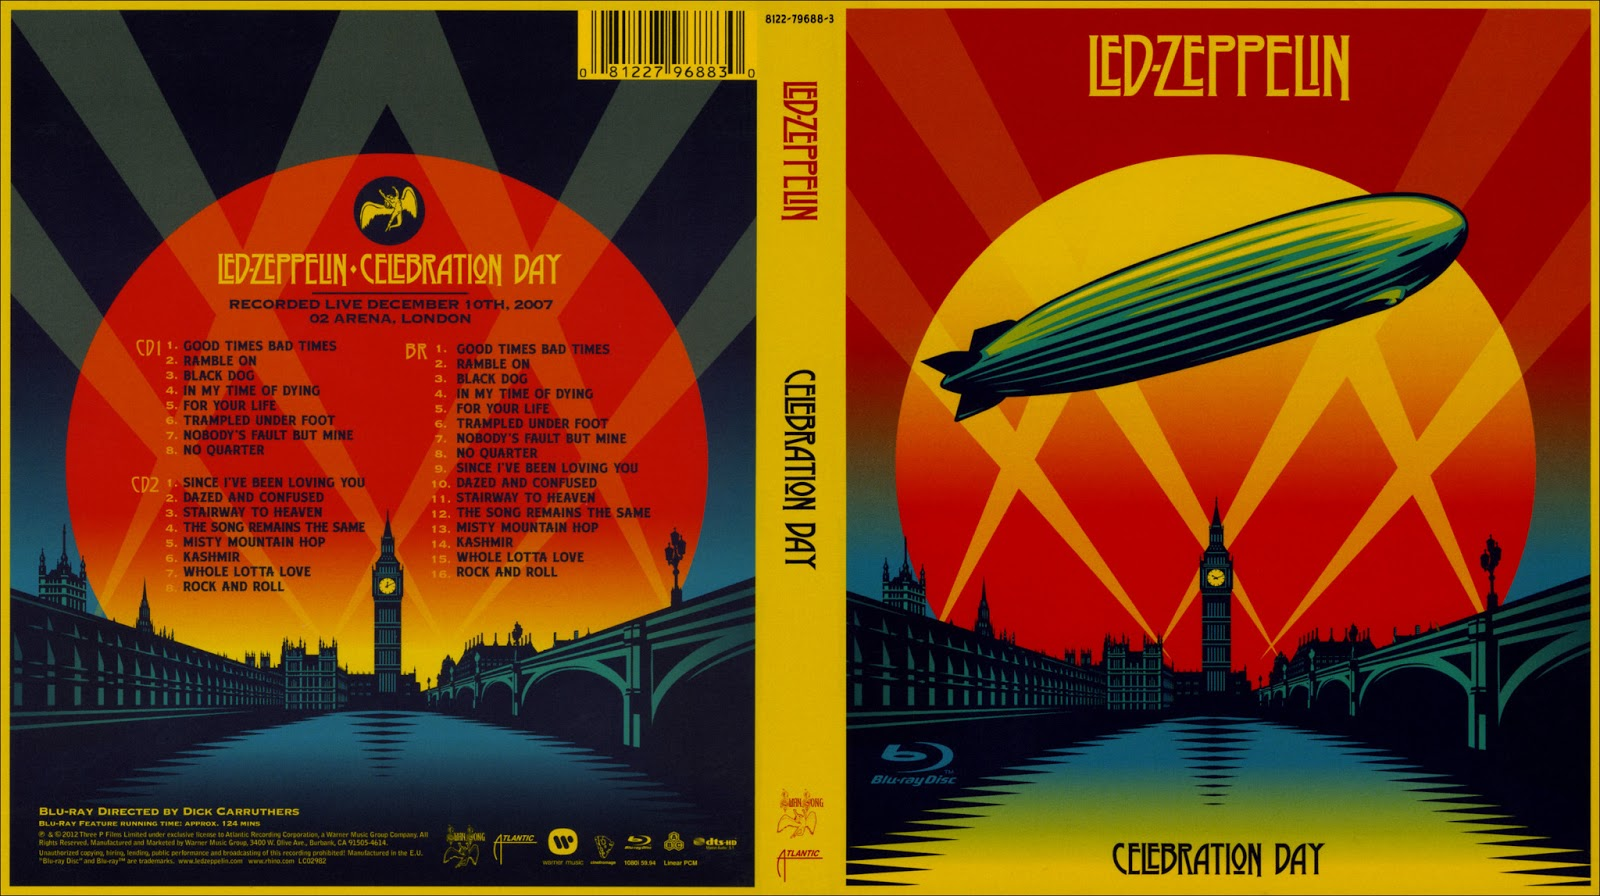 Led Zeppelin Celebration Day HDTVLed Zeppelin Celebration Day Wallpaper